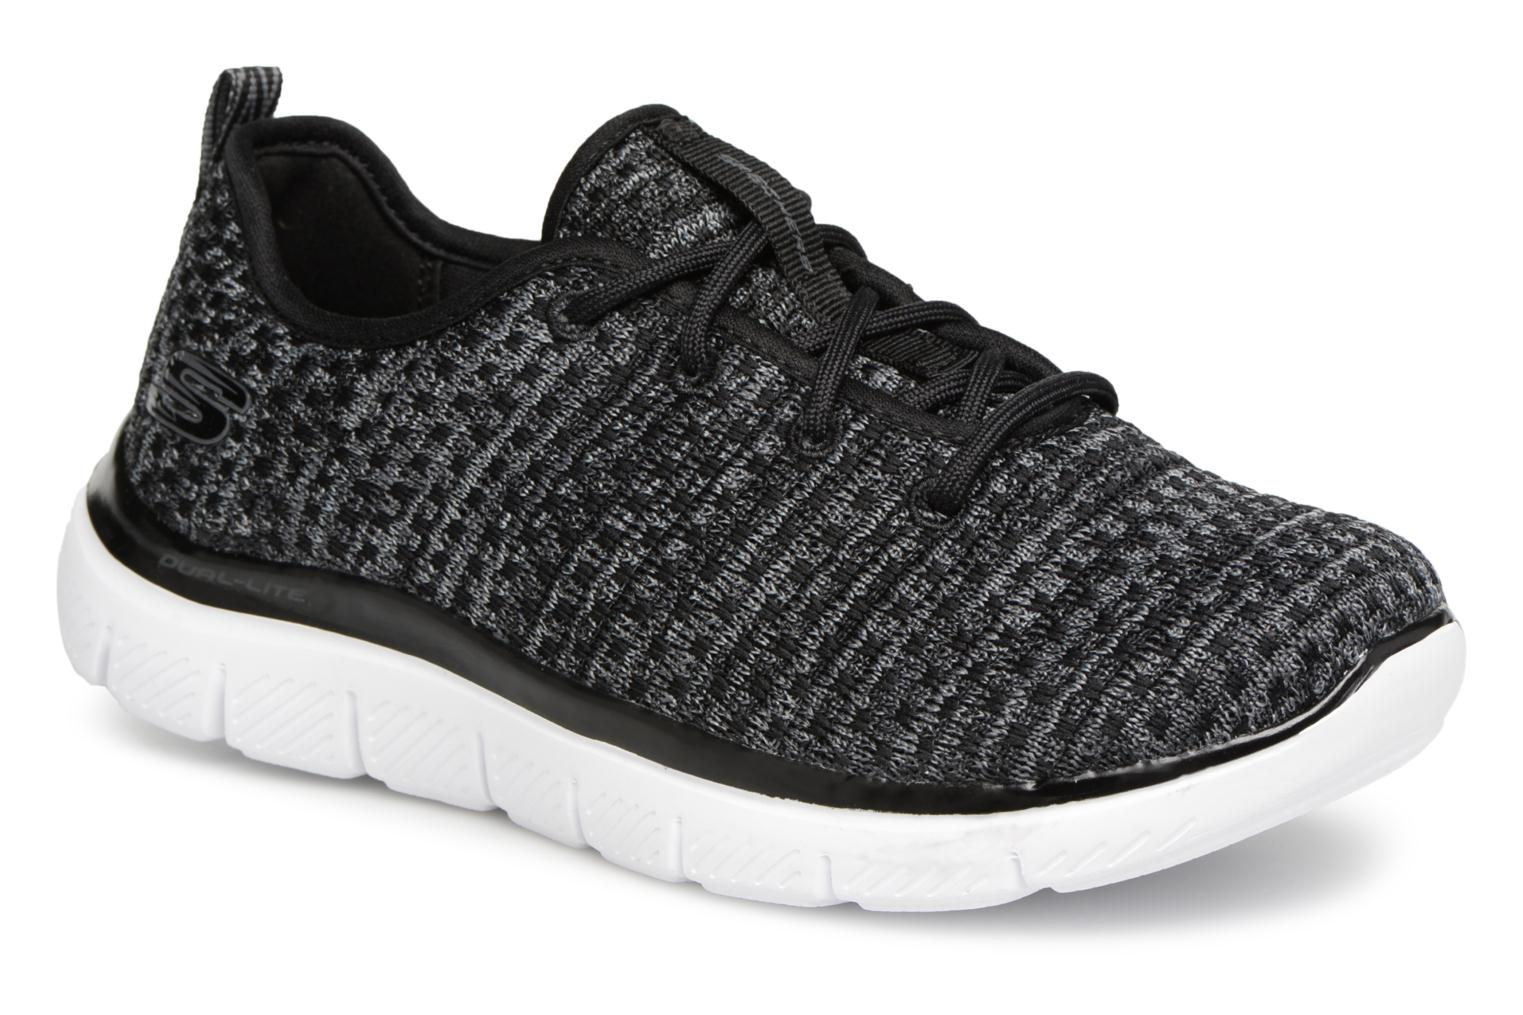 E Advantage Cravy BKGY 2 0 Skechers Flex HZBnq0